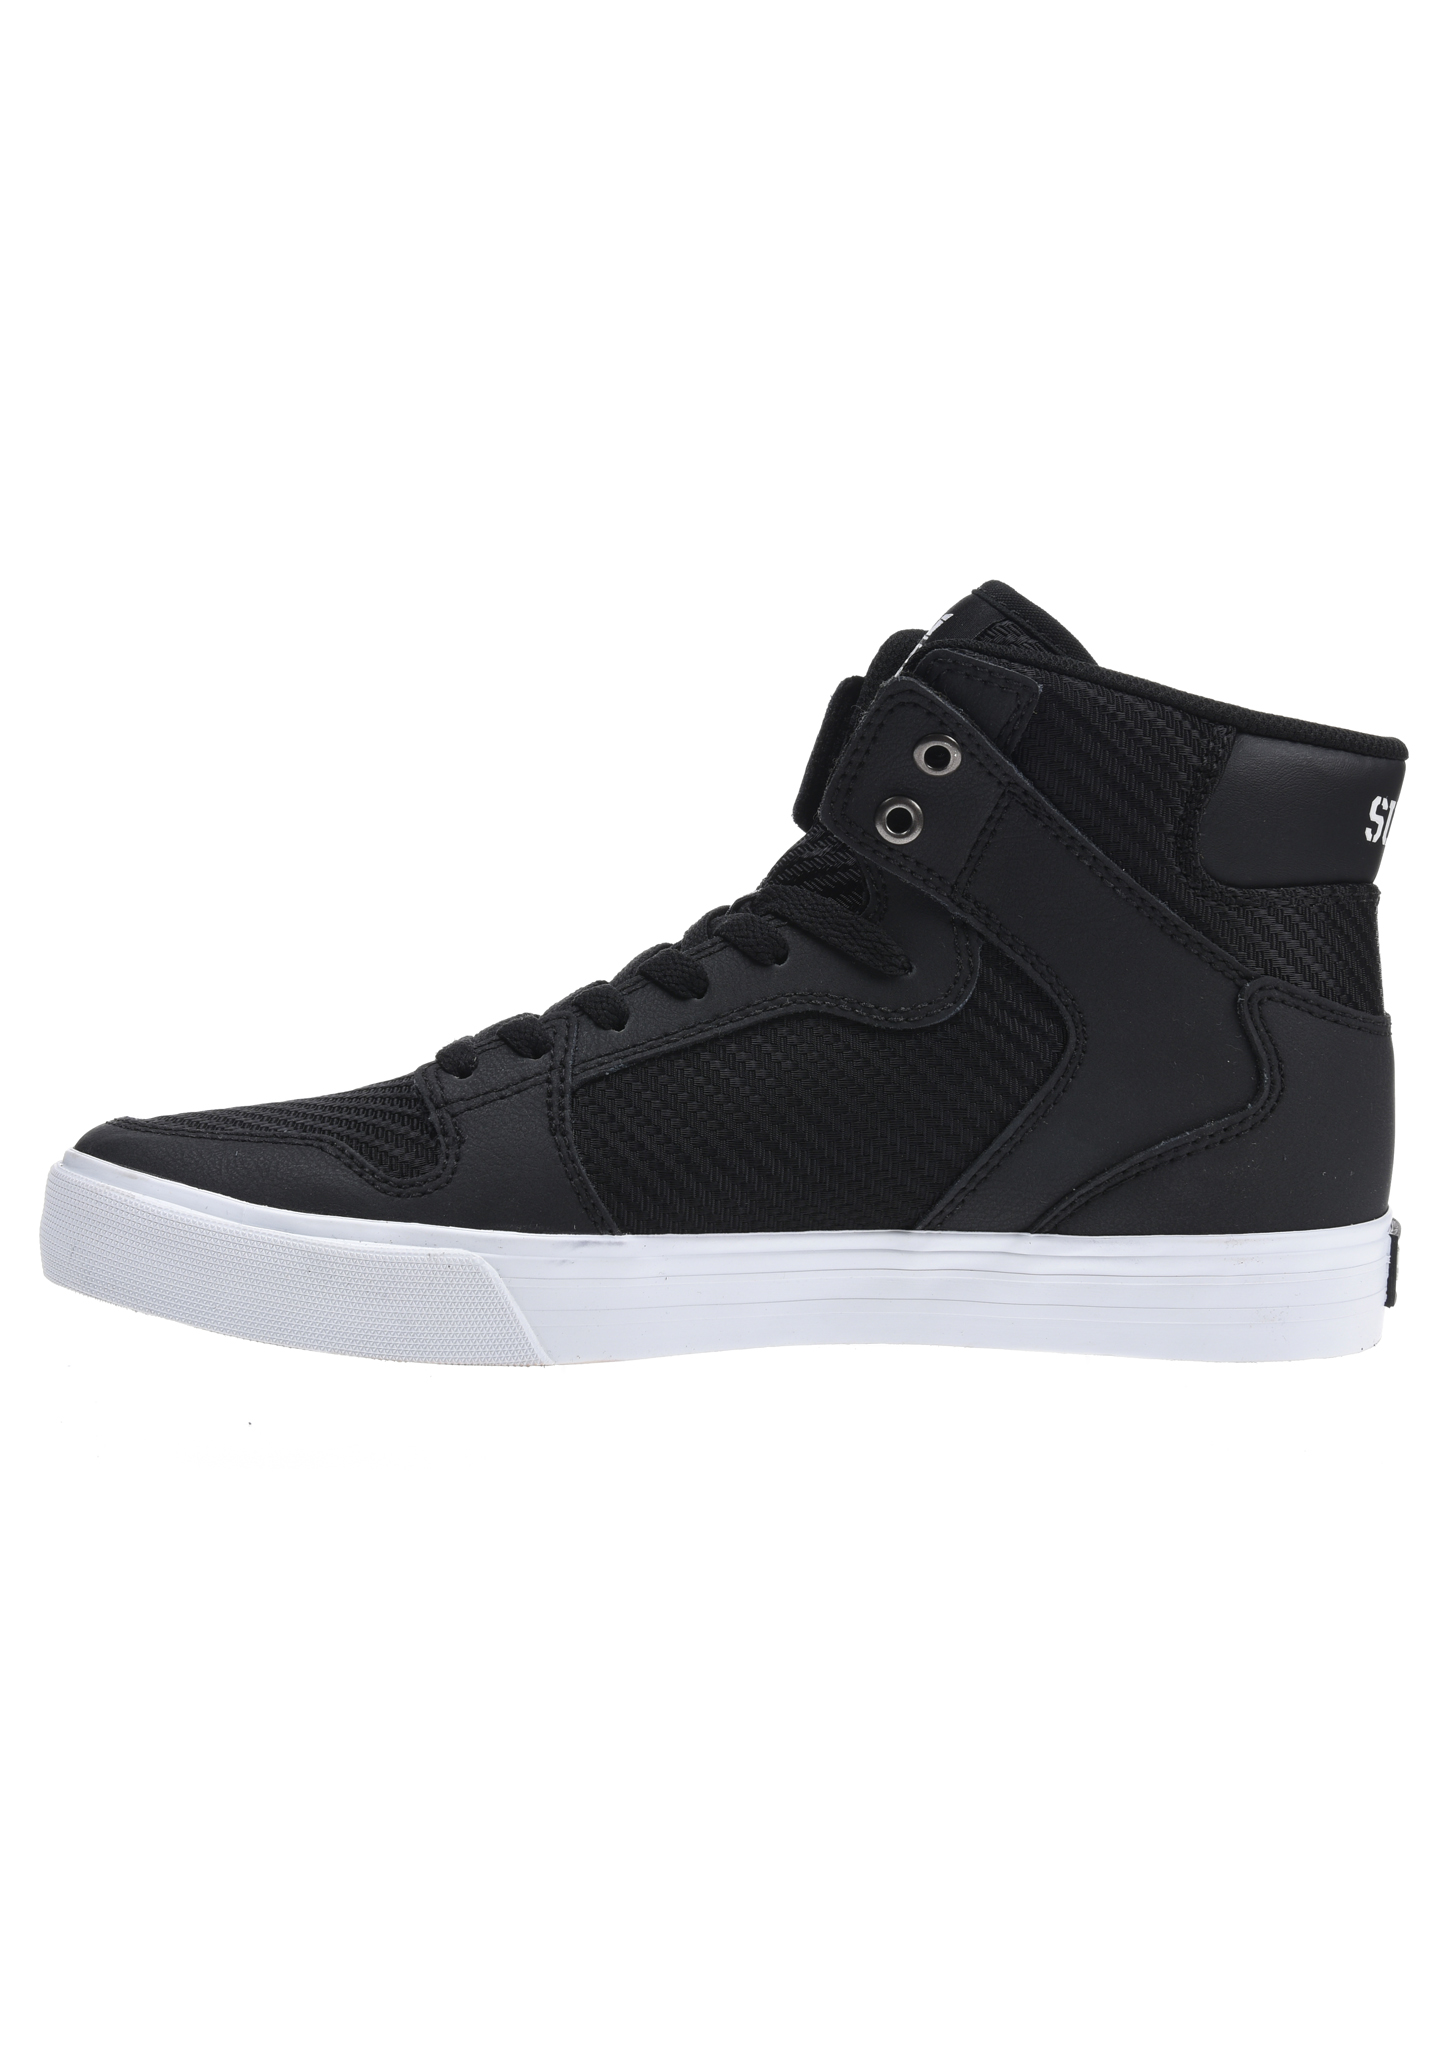 supra vaider herren sneaker turnschuhe freizeit schuhe sneakers ebay. Black Bedroom Furniture Sets. Home Design Ideas